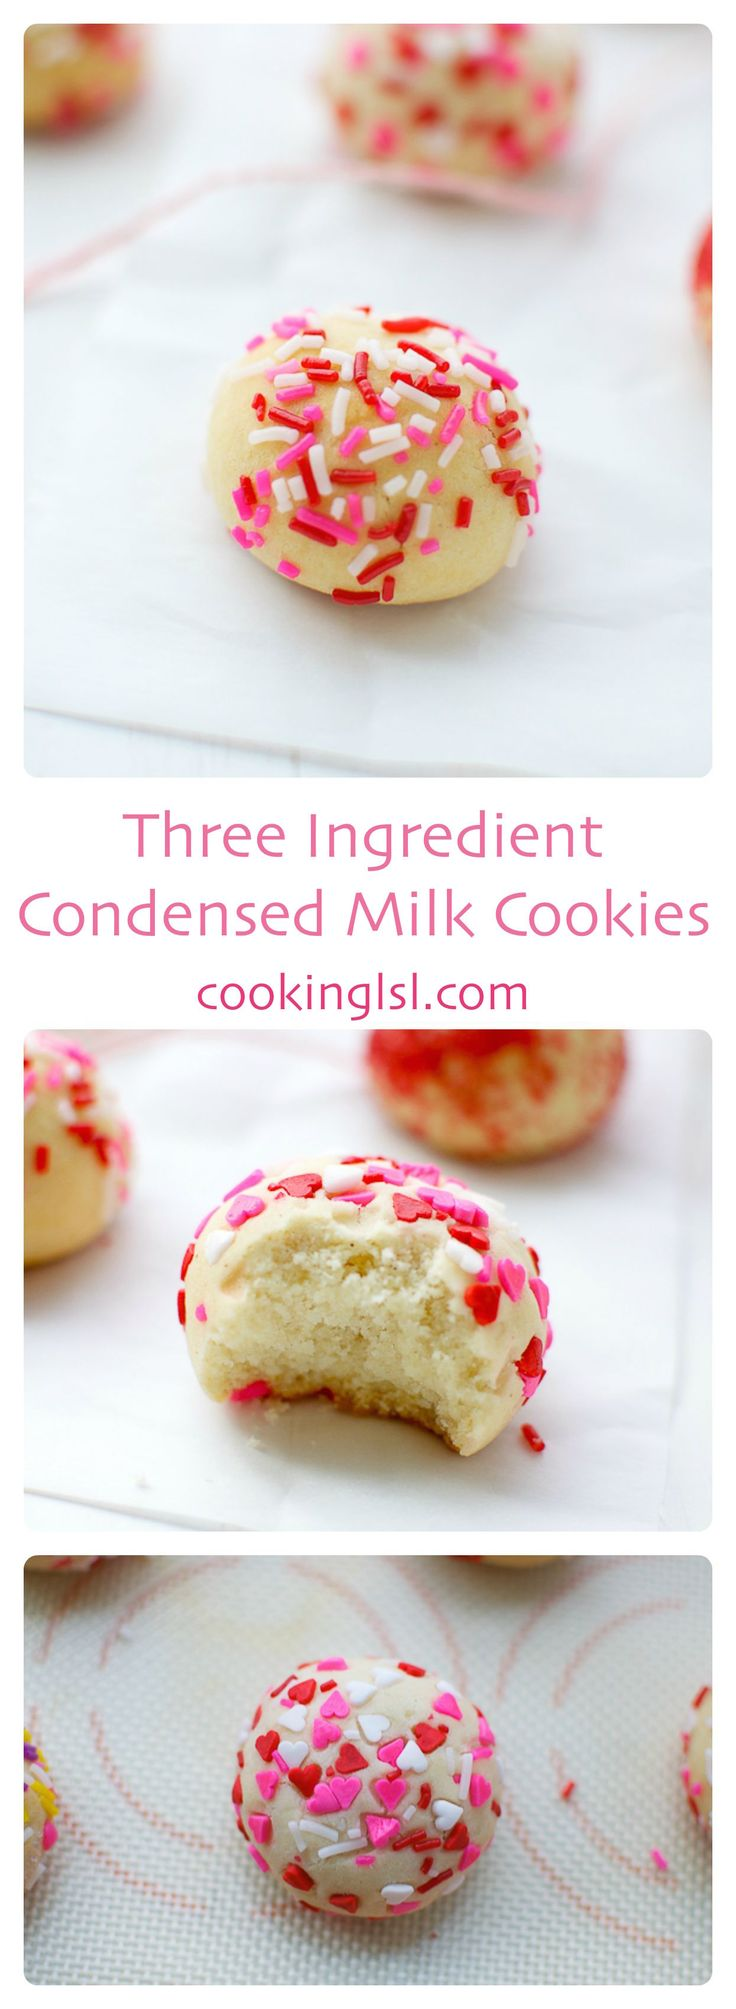 condensed-milk-cookies-three-ingredient